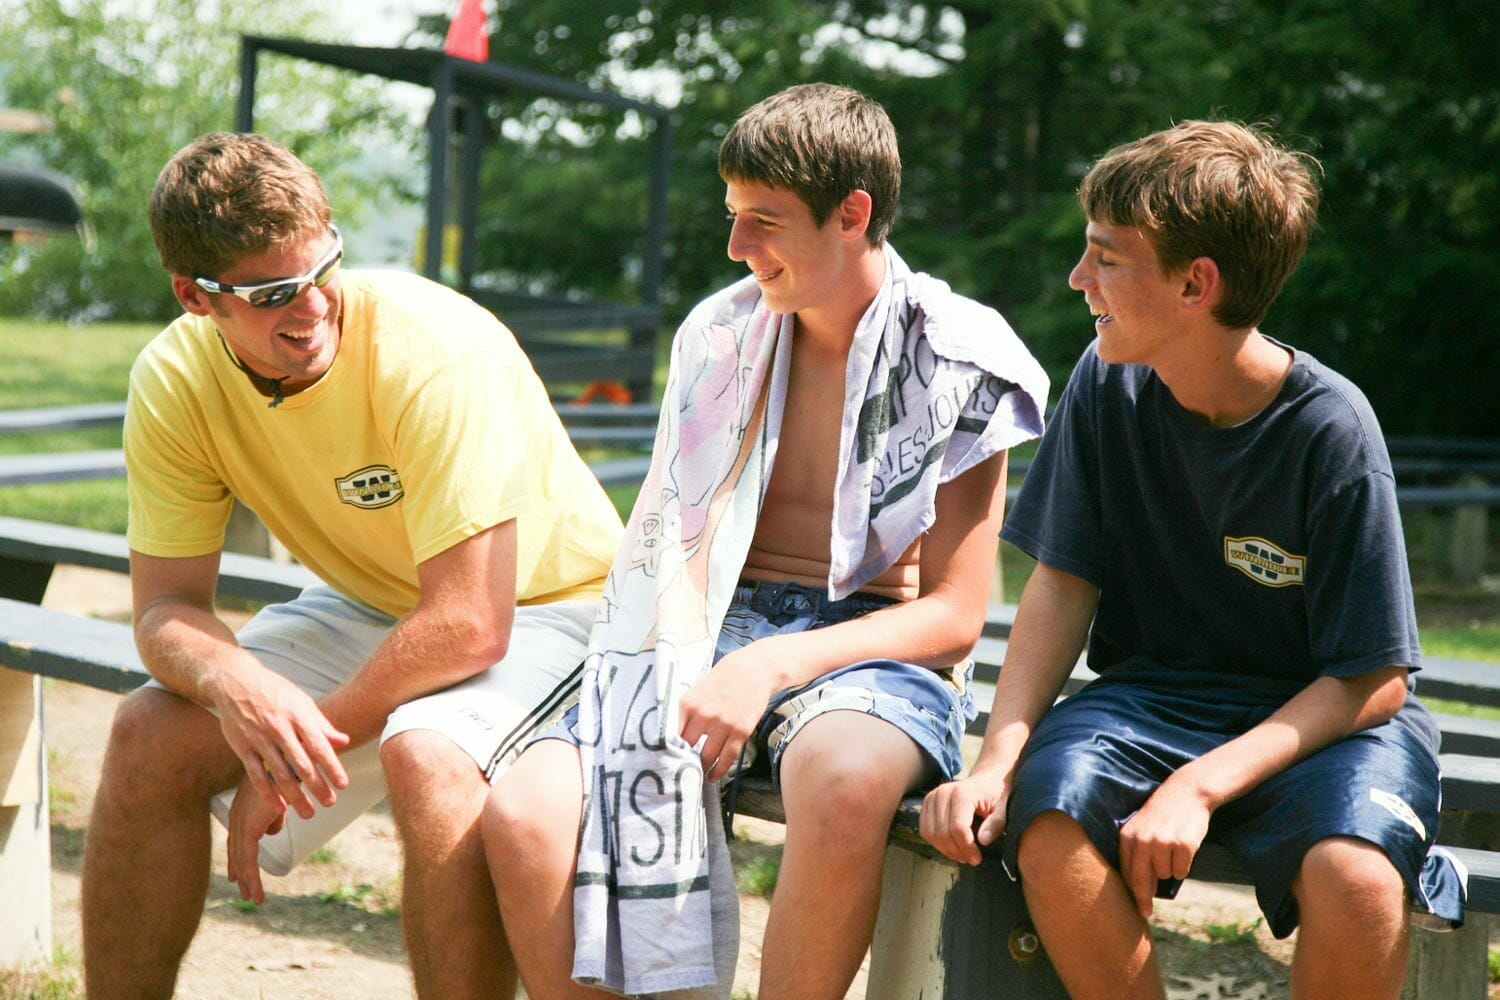 USA summer camp boys and counselor laughing